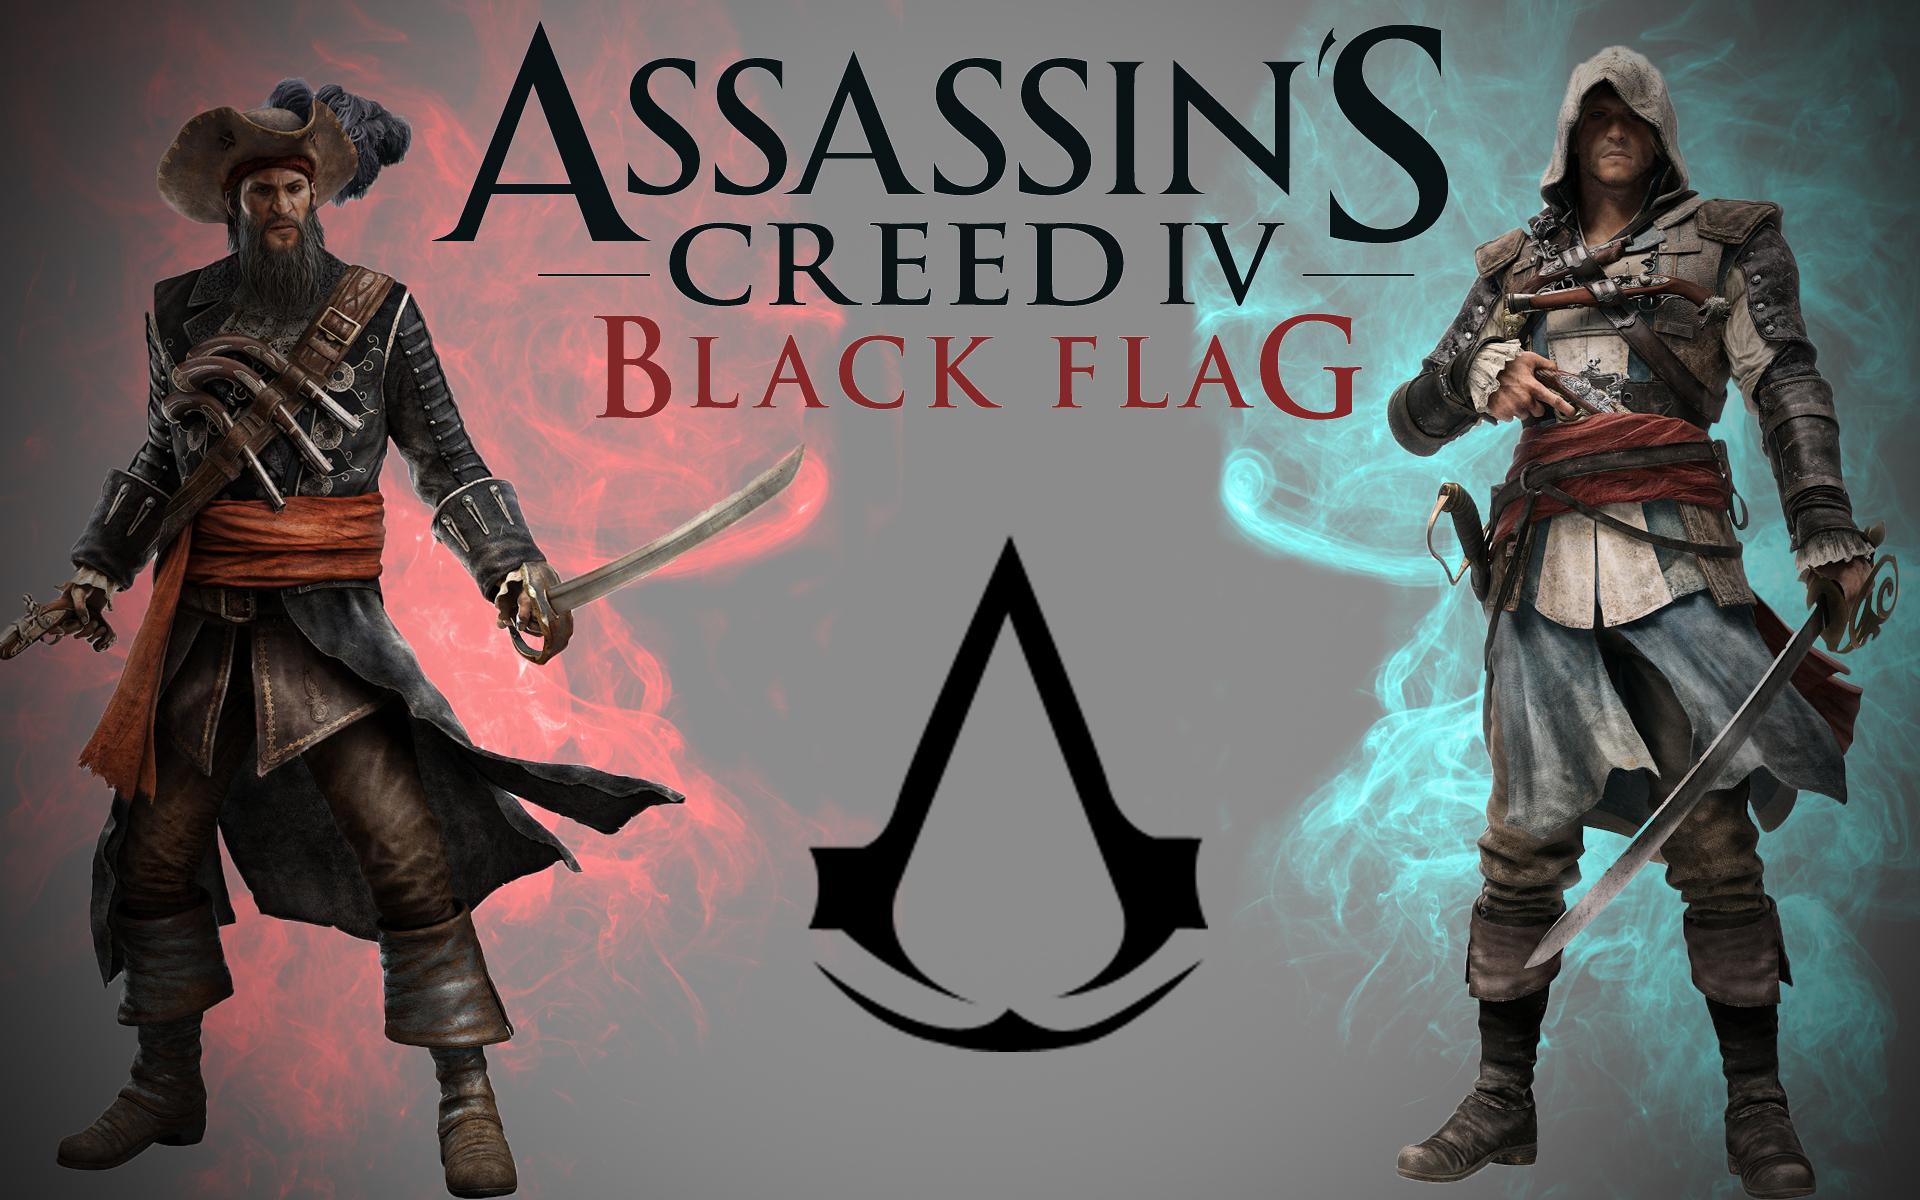 Hd Wallpapers Assassin S Creed 4 Black Flag